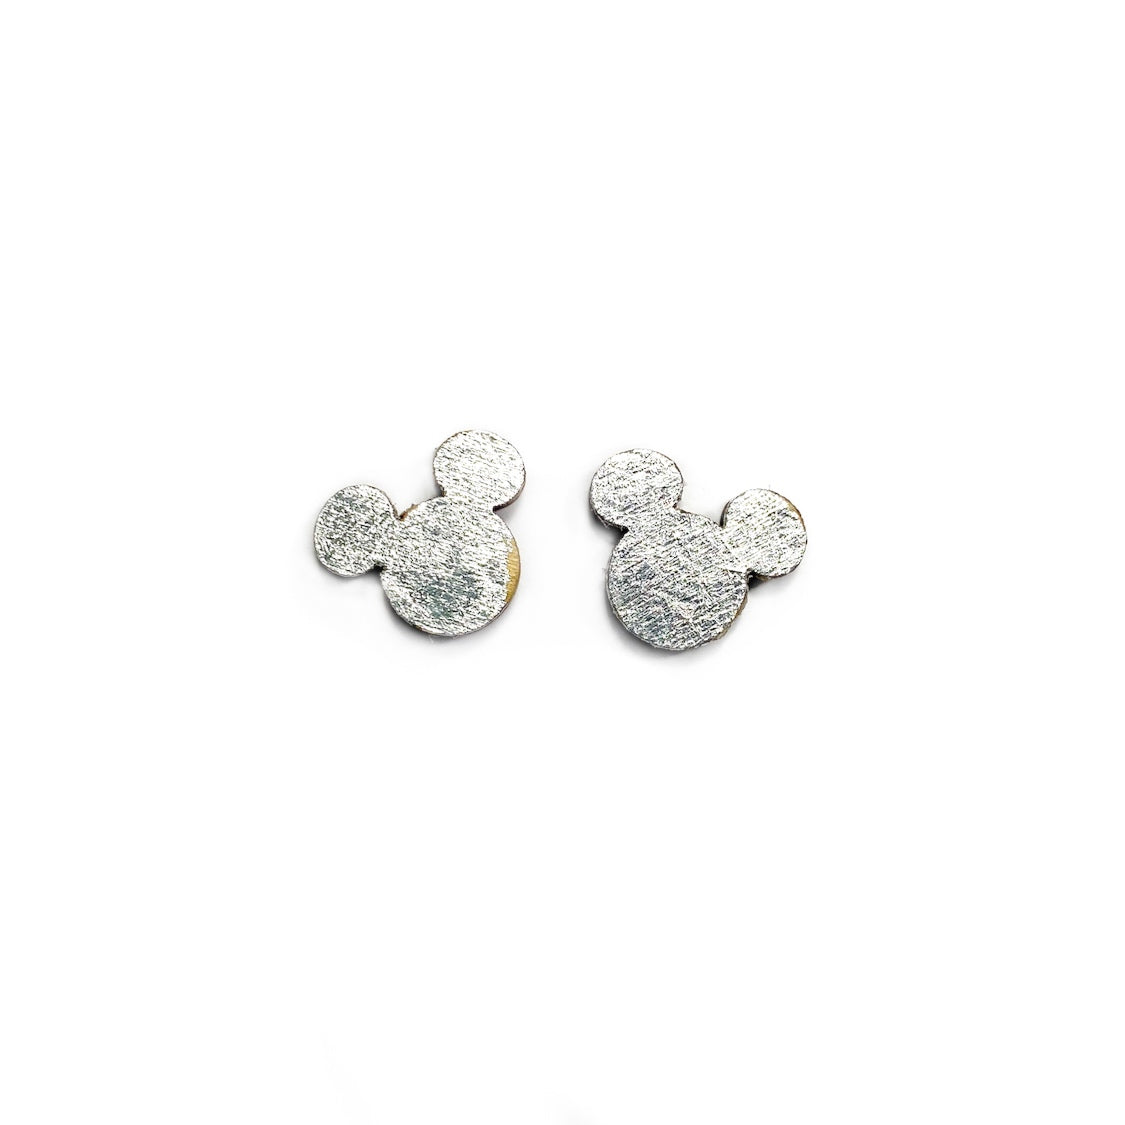 Silver Gilded Mouse Ear Timbers  - 12mm Wooden Shaped Studs